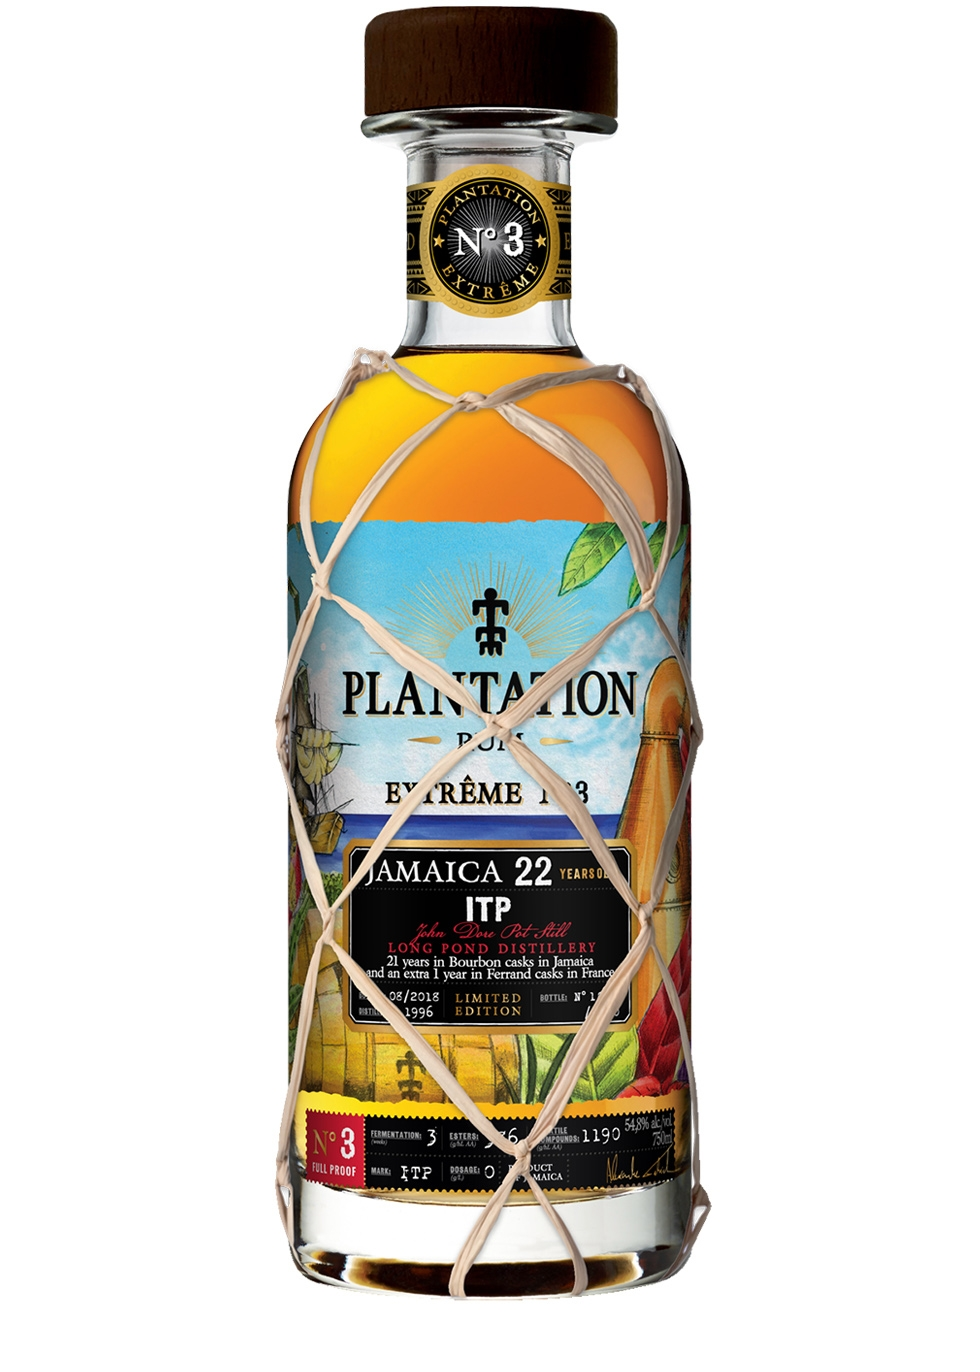 Plantation  Extrême No.3 ITP 22 Year Old Jamaican Rum